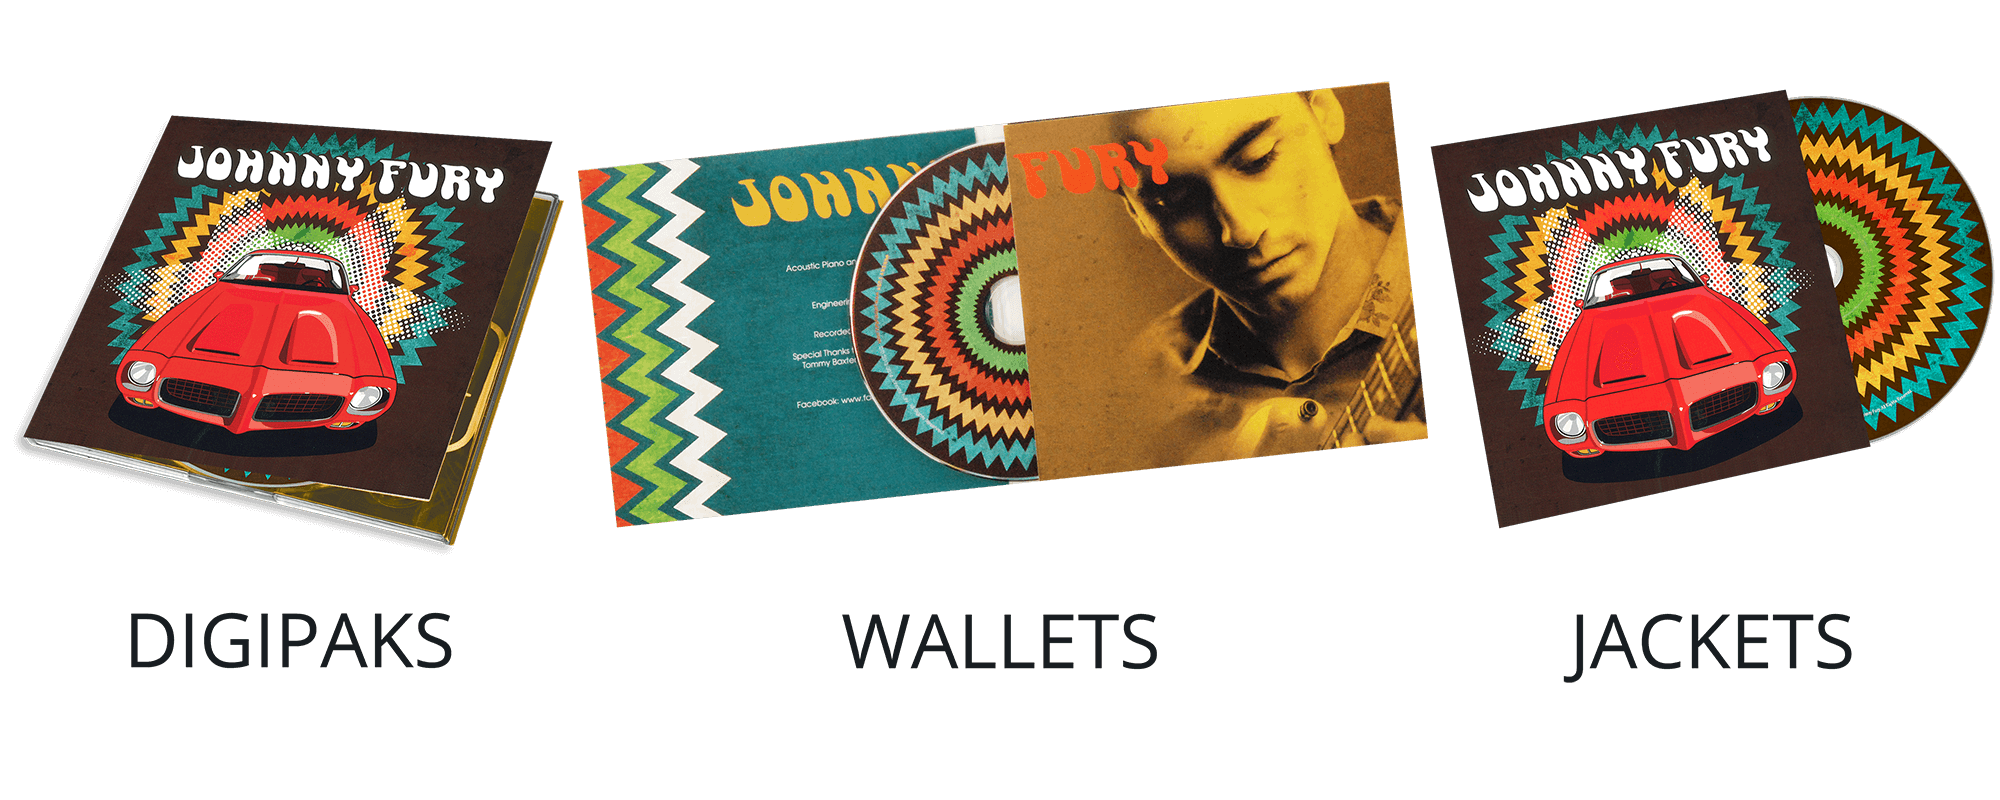 Digipaks Wallets Jackets